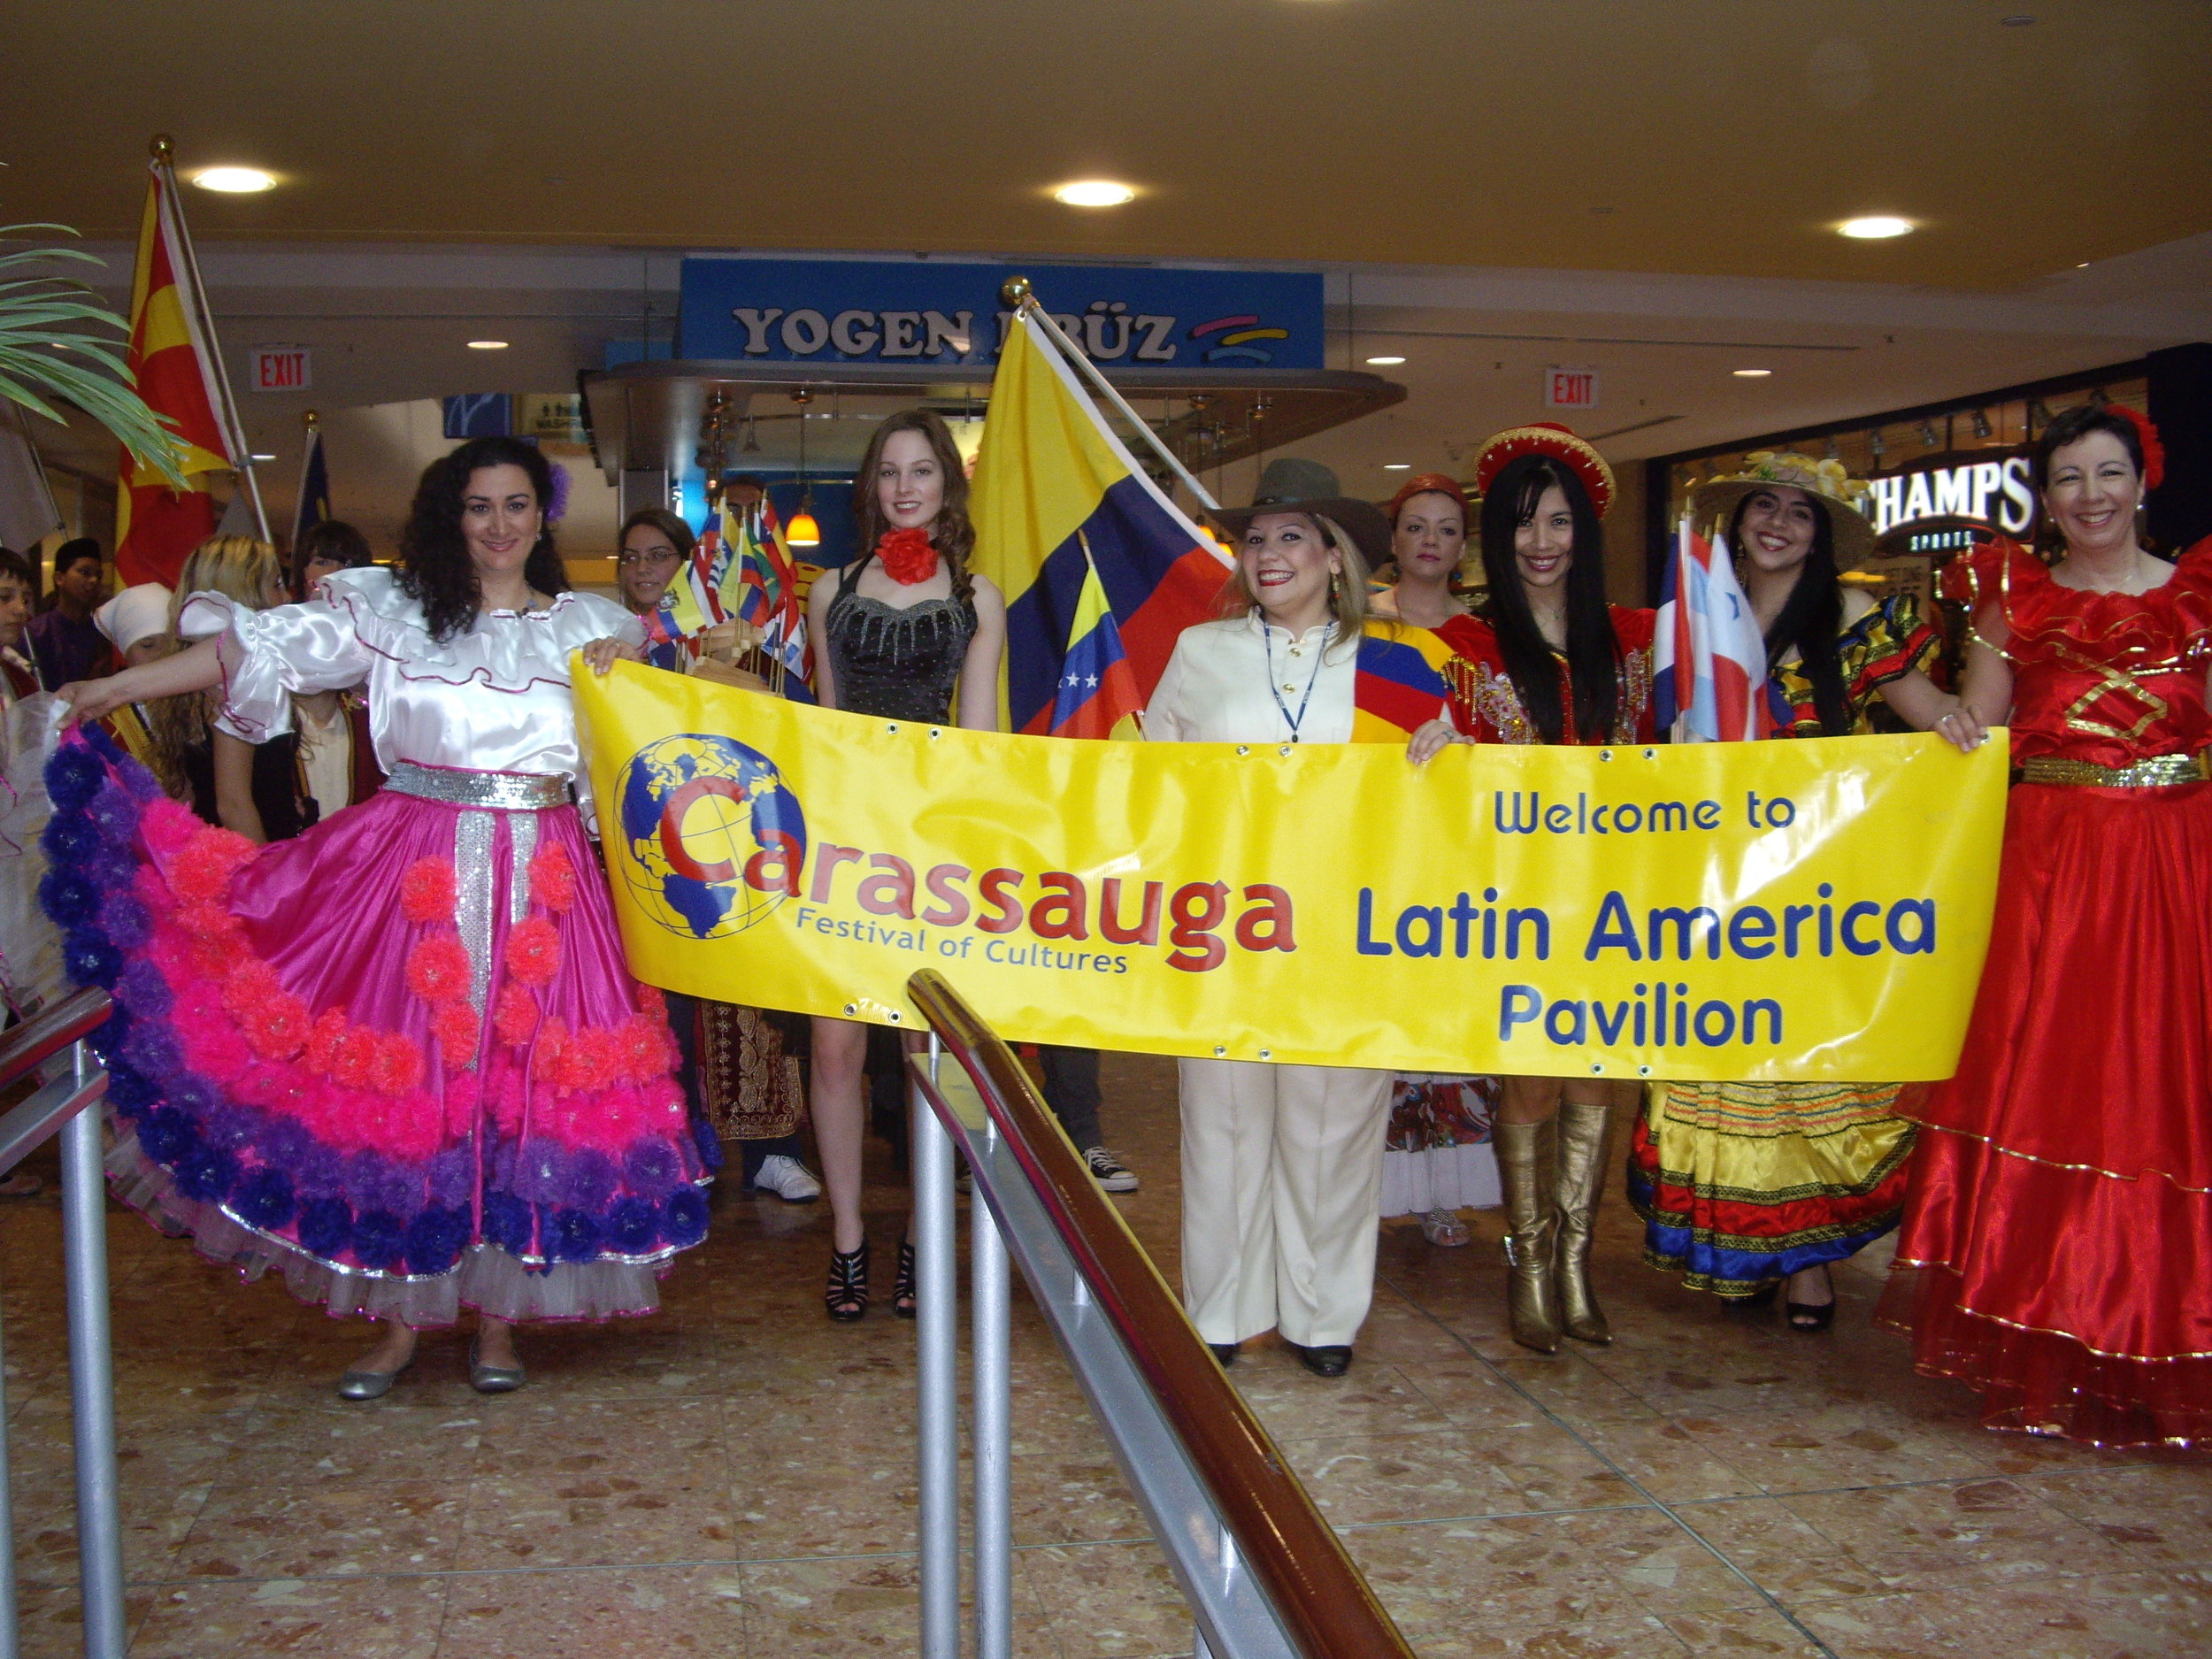 Promoting Carassauga Festival of Cultures in  Square One